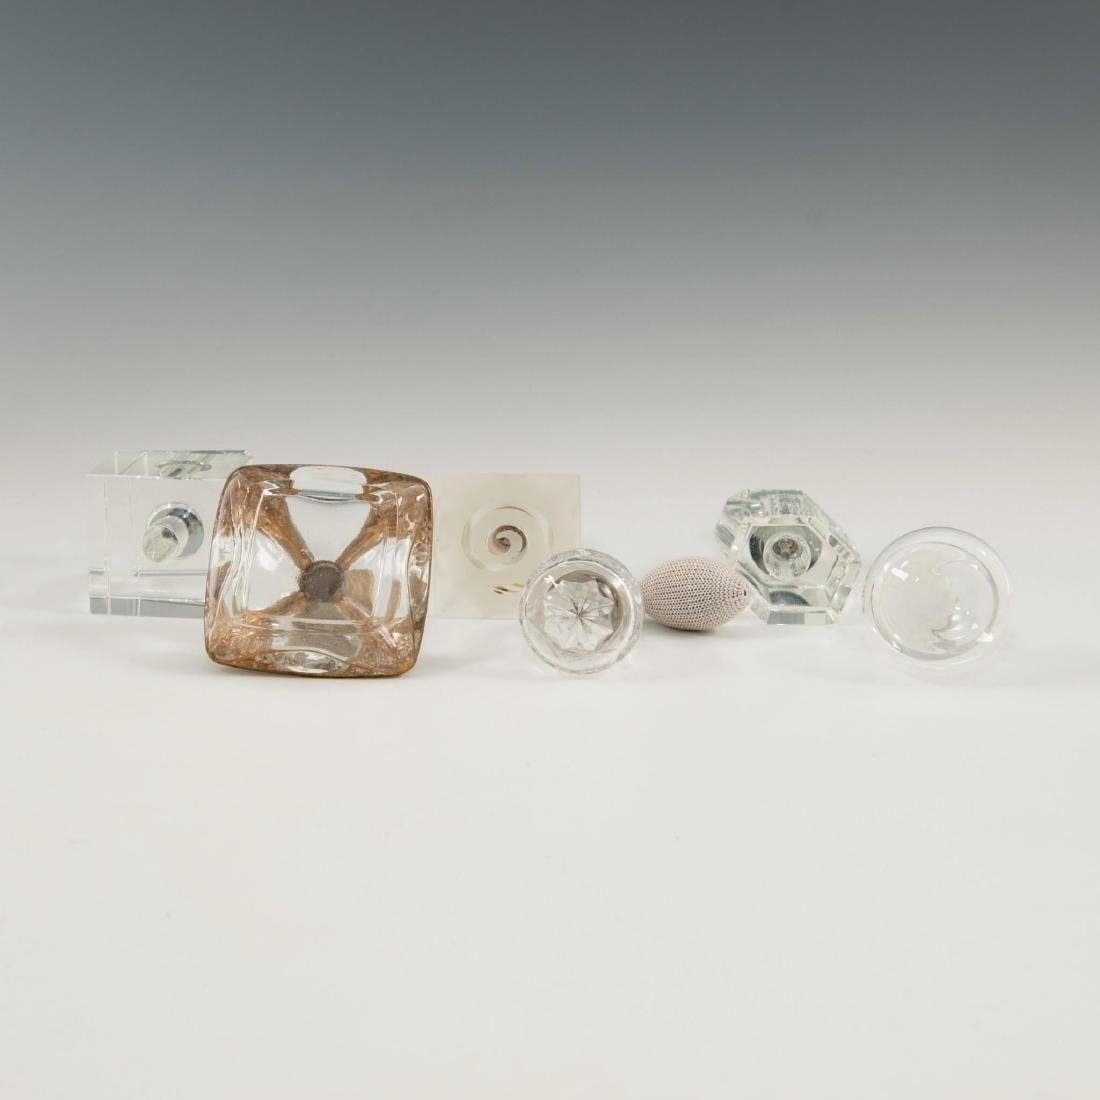 GROUP OF 12 CRYSTAL ART GLASS PERFUME BOTTLES LALIQUE - 4